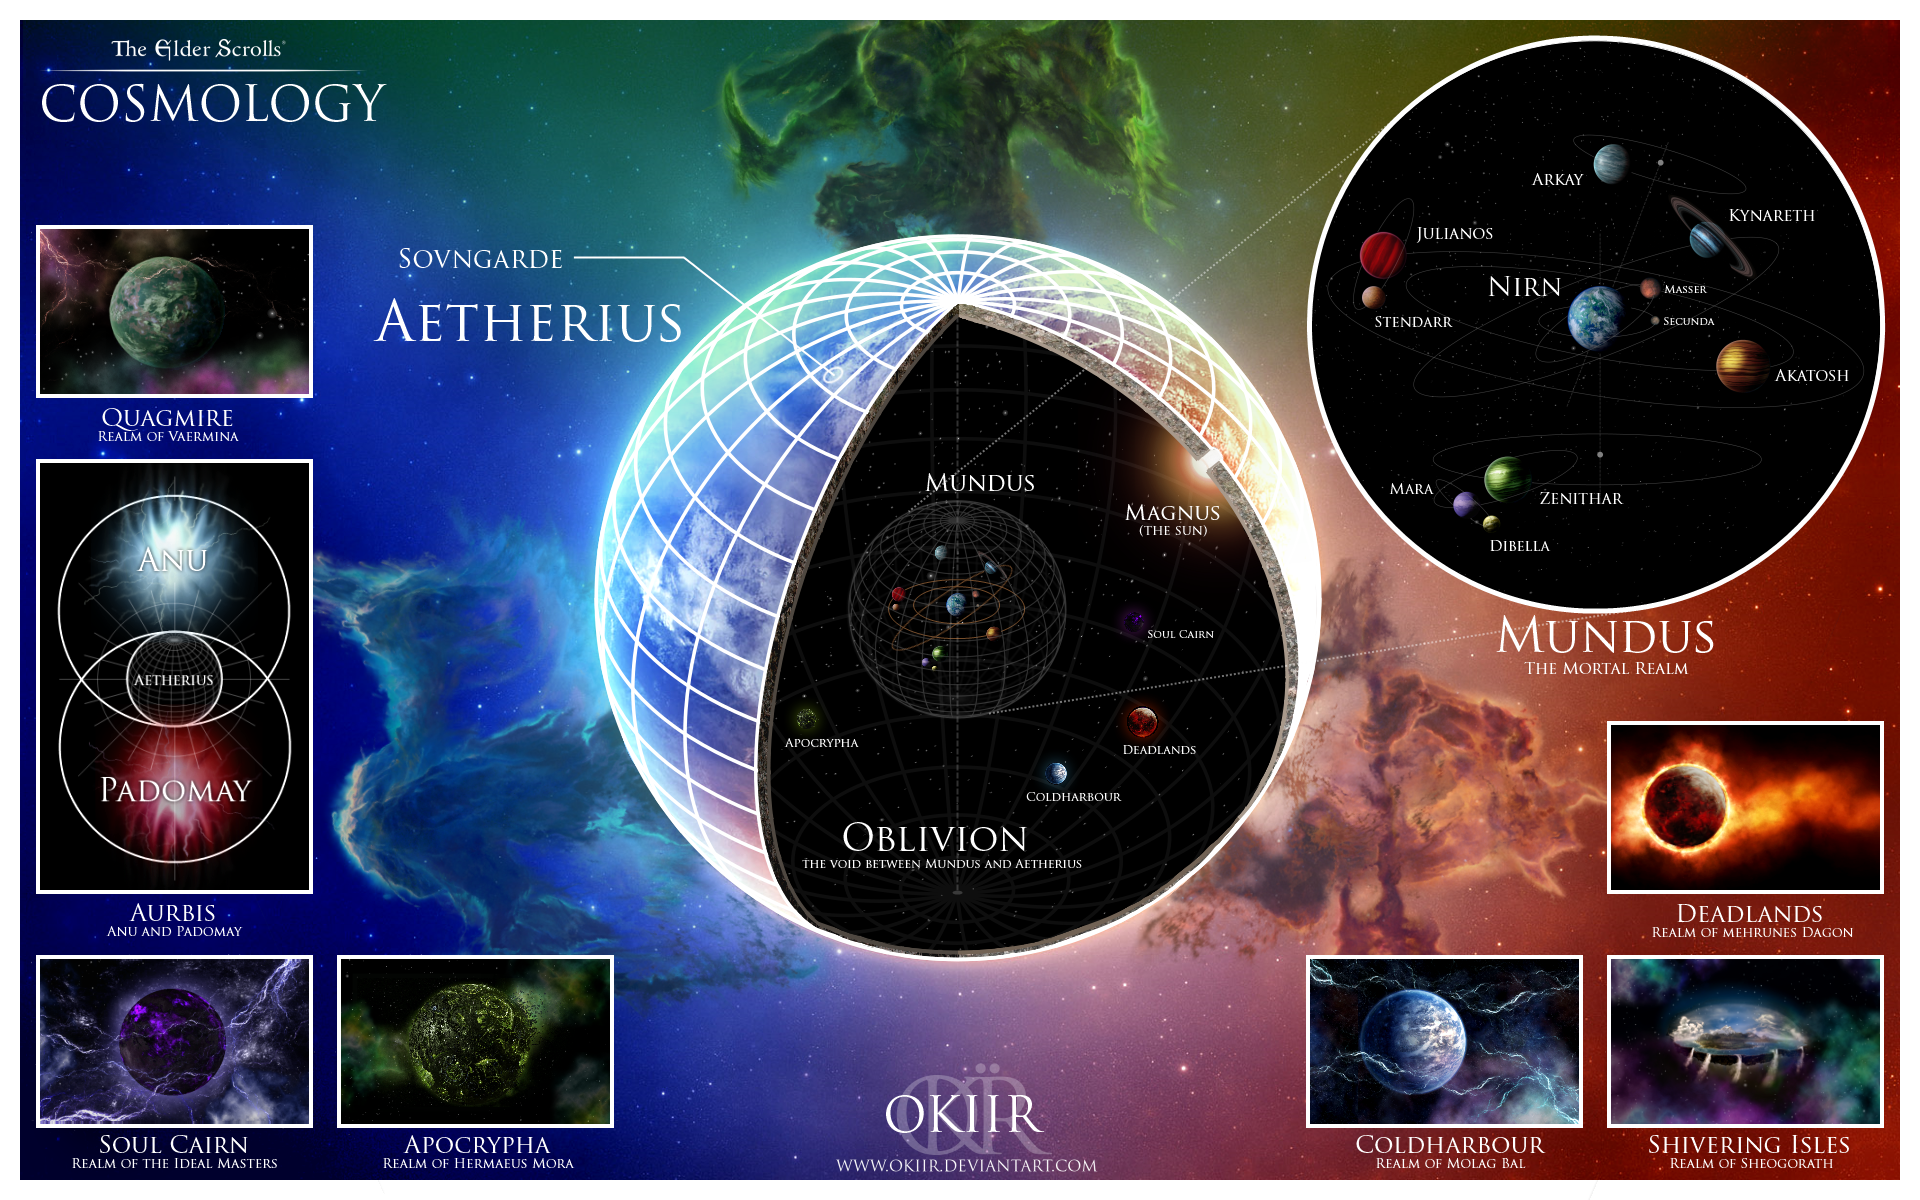 the_elder_scrolls__cosmology_by_okiir-d757i0g.png